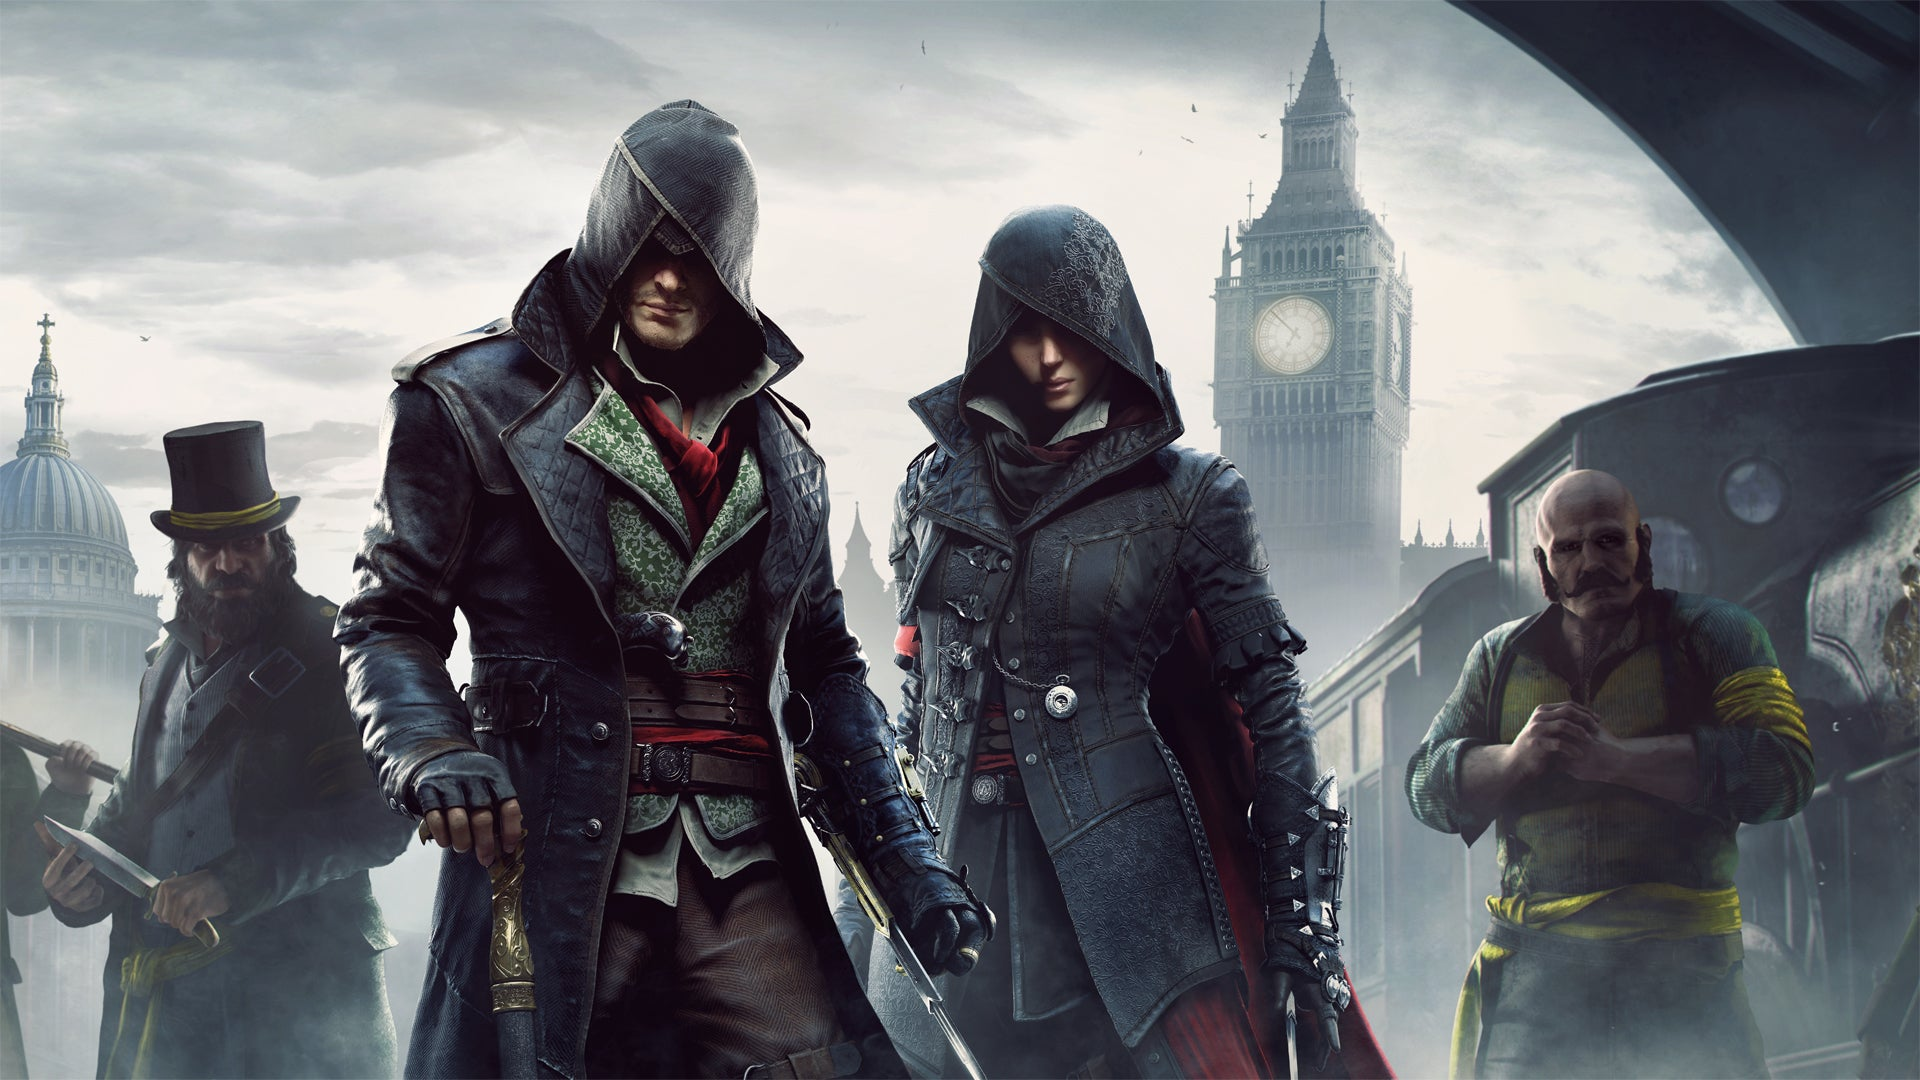 Epic Games Store's latest free offering takes you to Victorian London